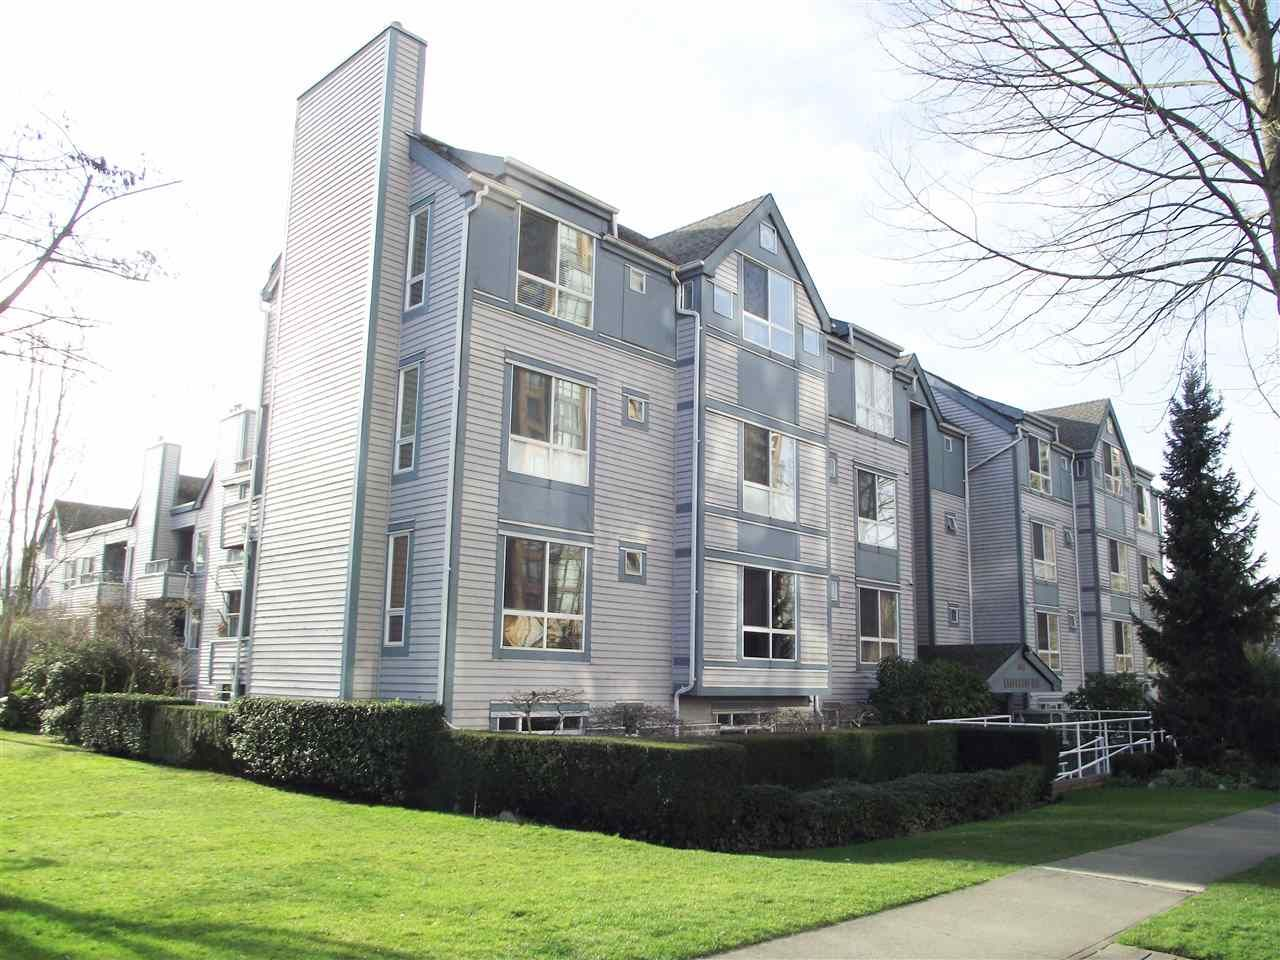 Main Photo: 102 7465 SANDBORNE Avenue in Burnaby: South Slope Condo for sale (Burnaby South)  : MLS®# R2039770